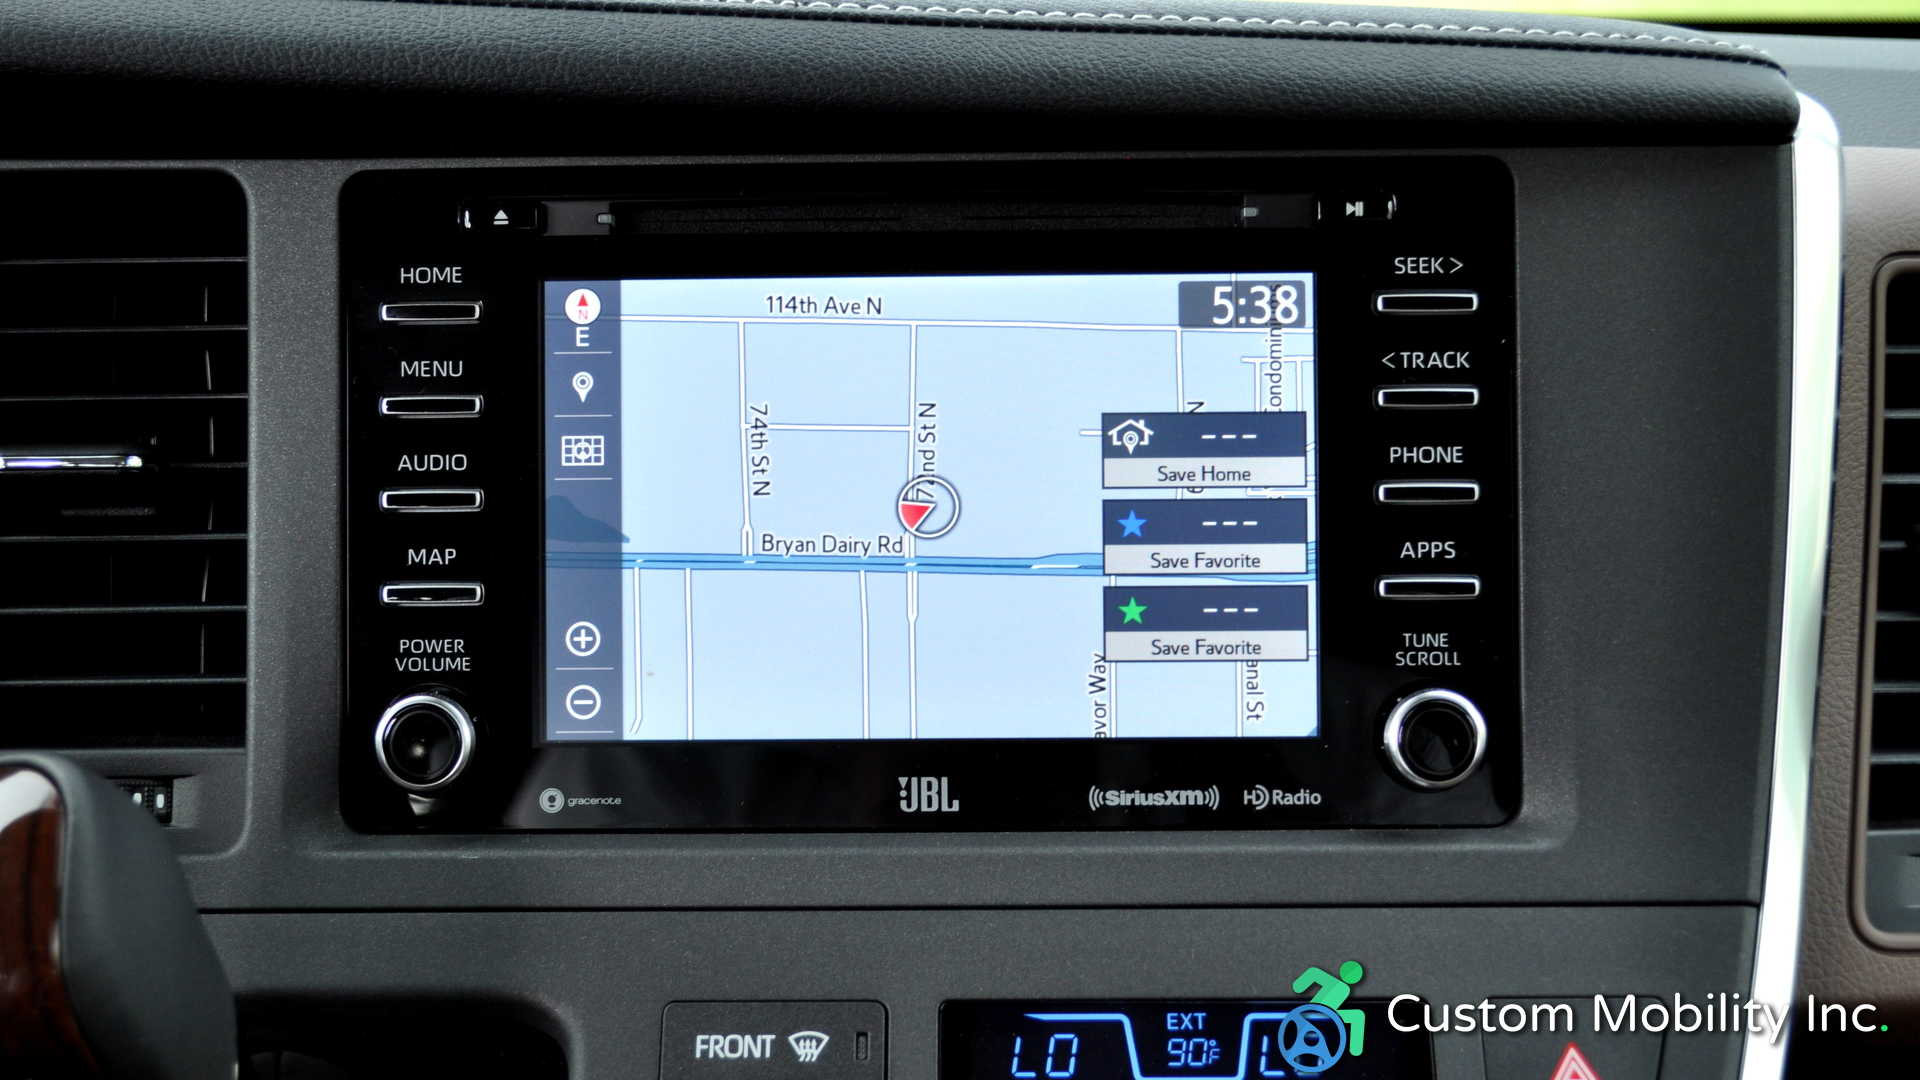 Toyota Sienna Service Manual: Audio and visual system